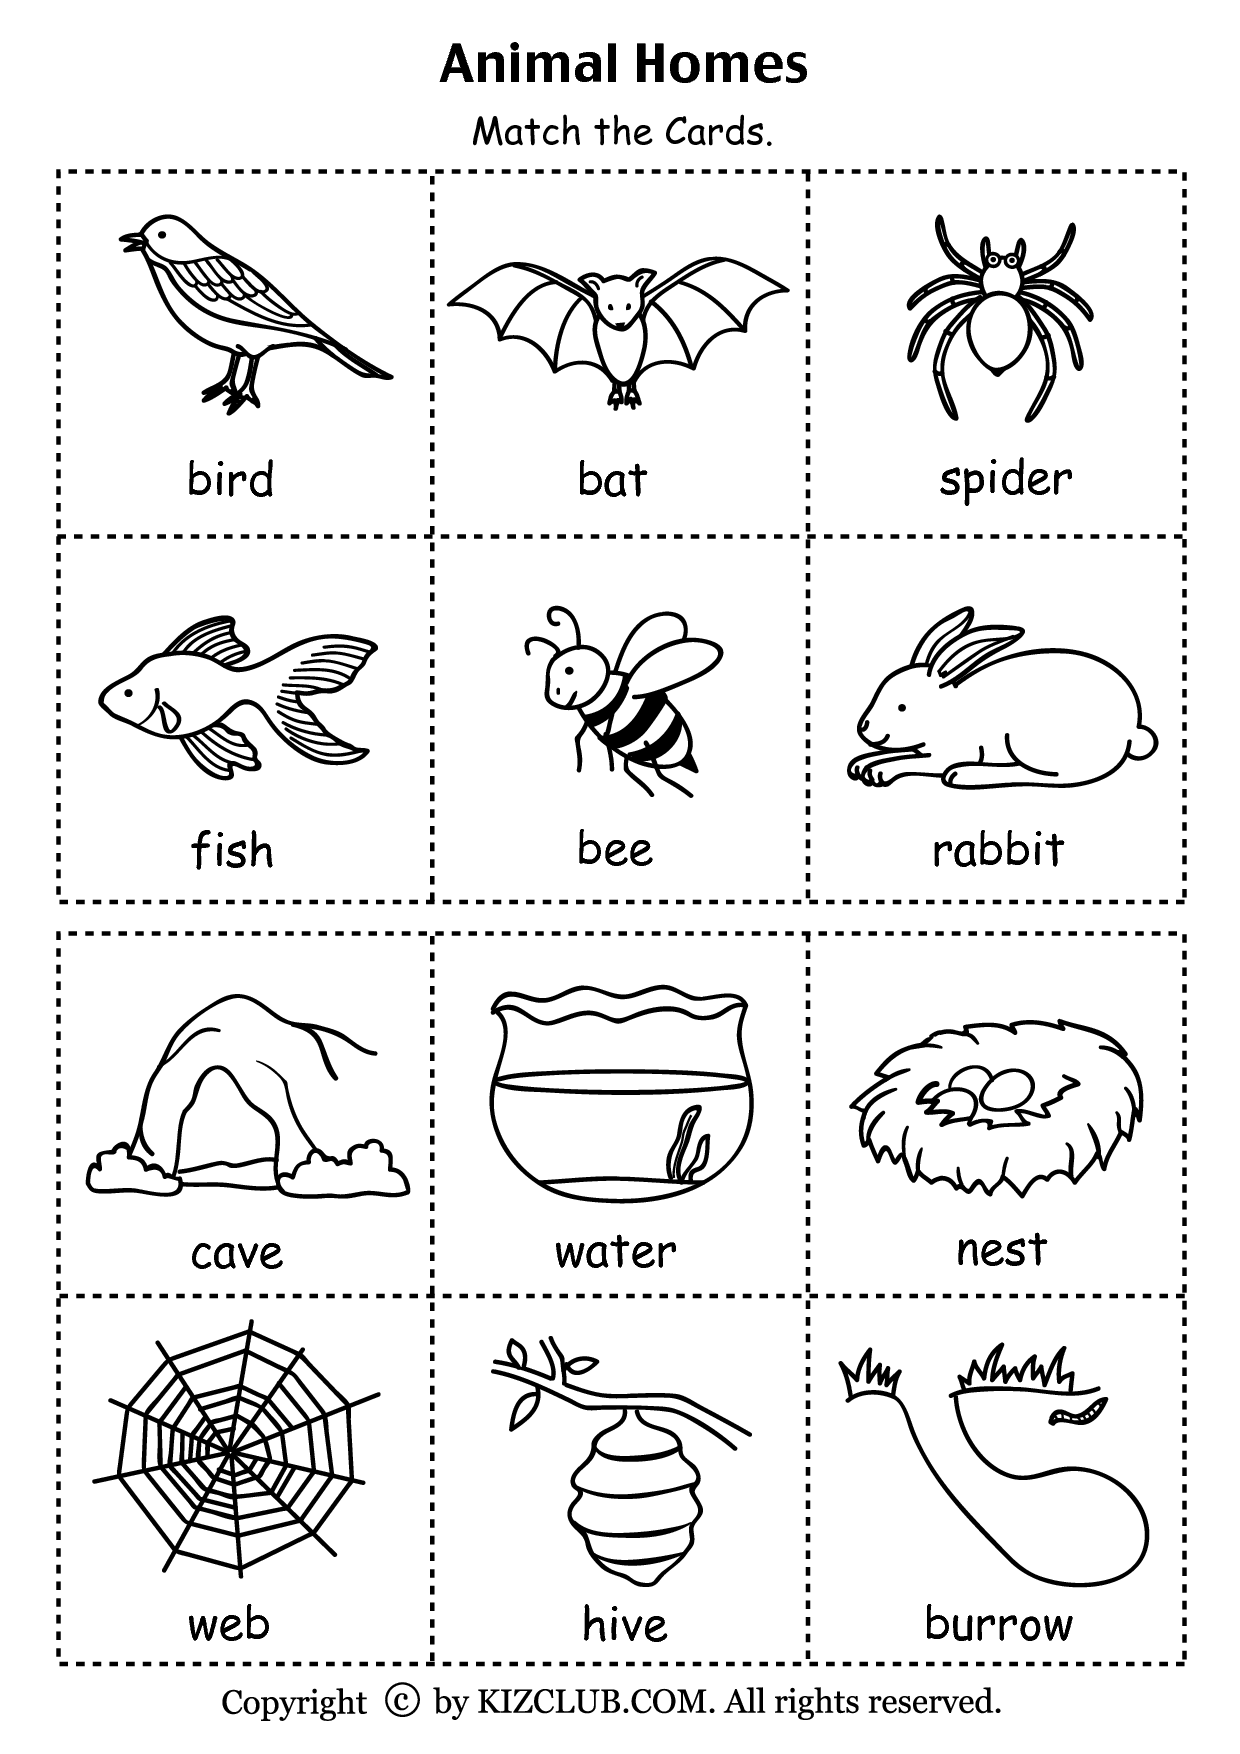 Animal Homes PDF Printable Organization or everything else